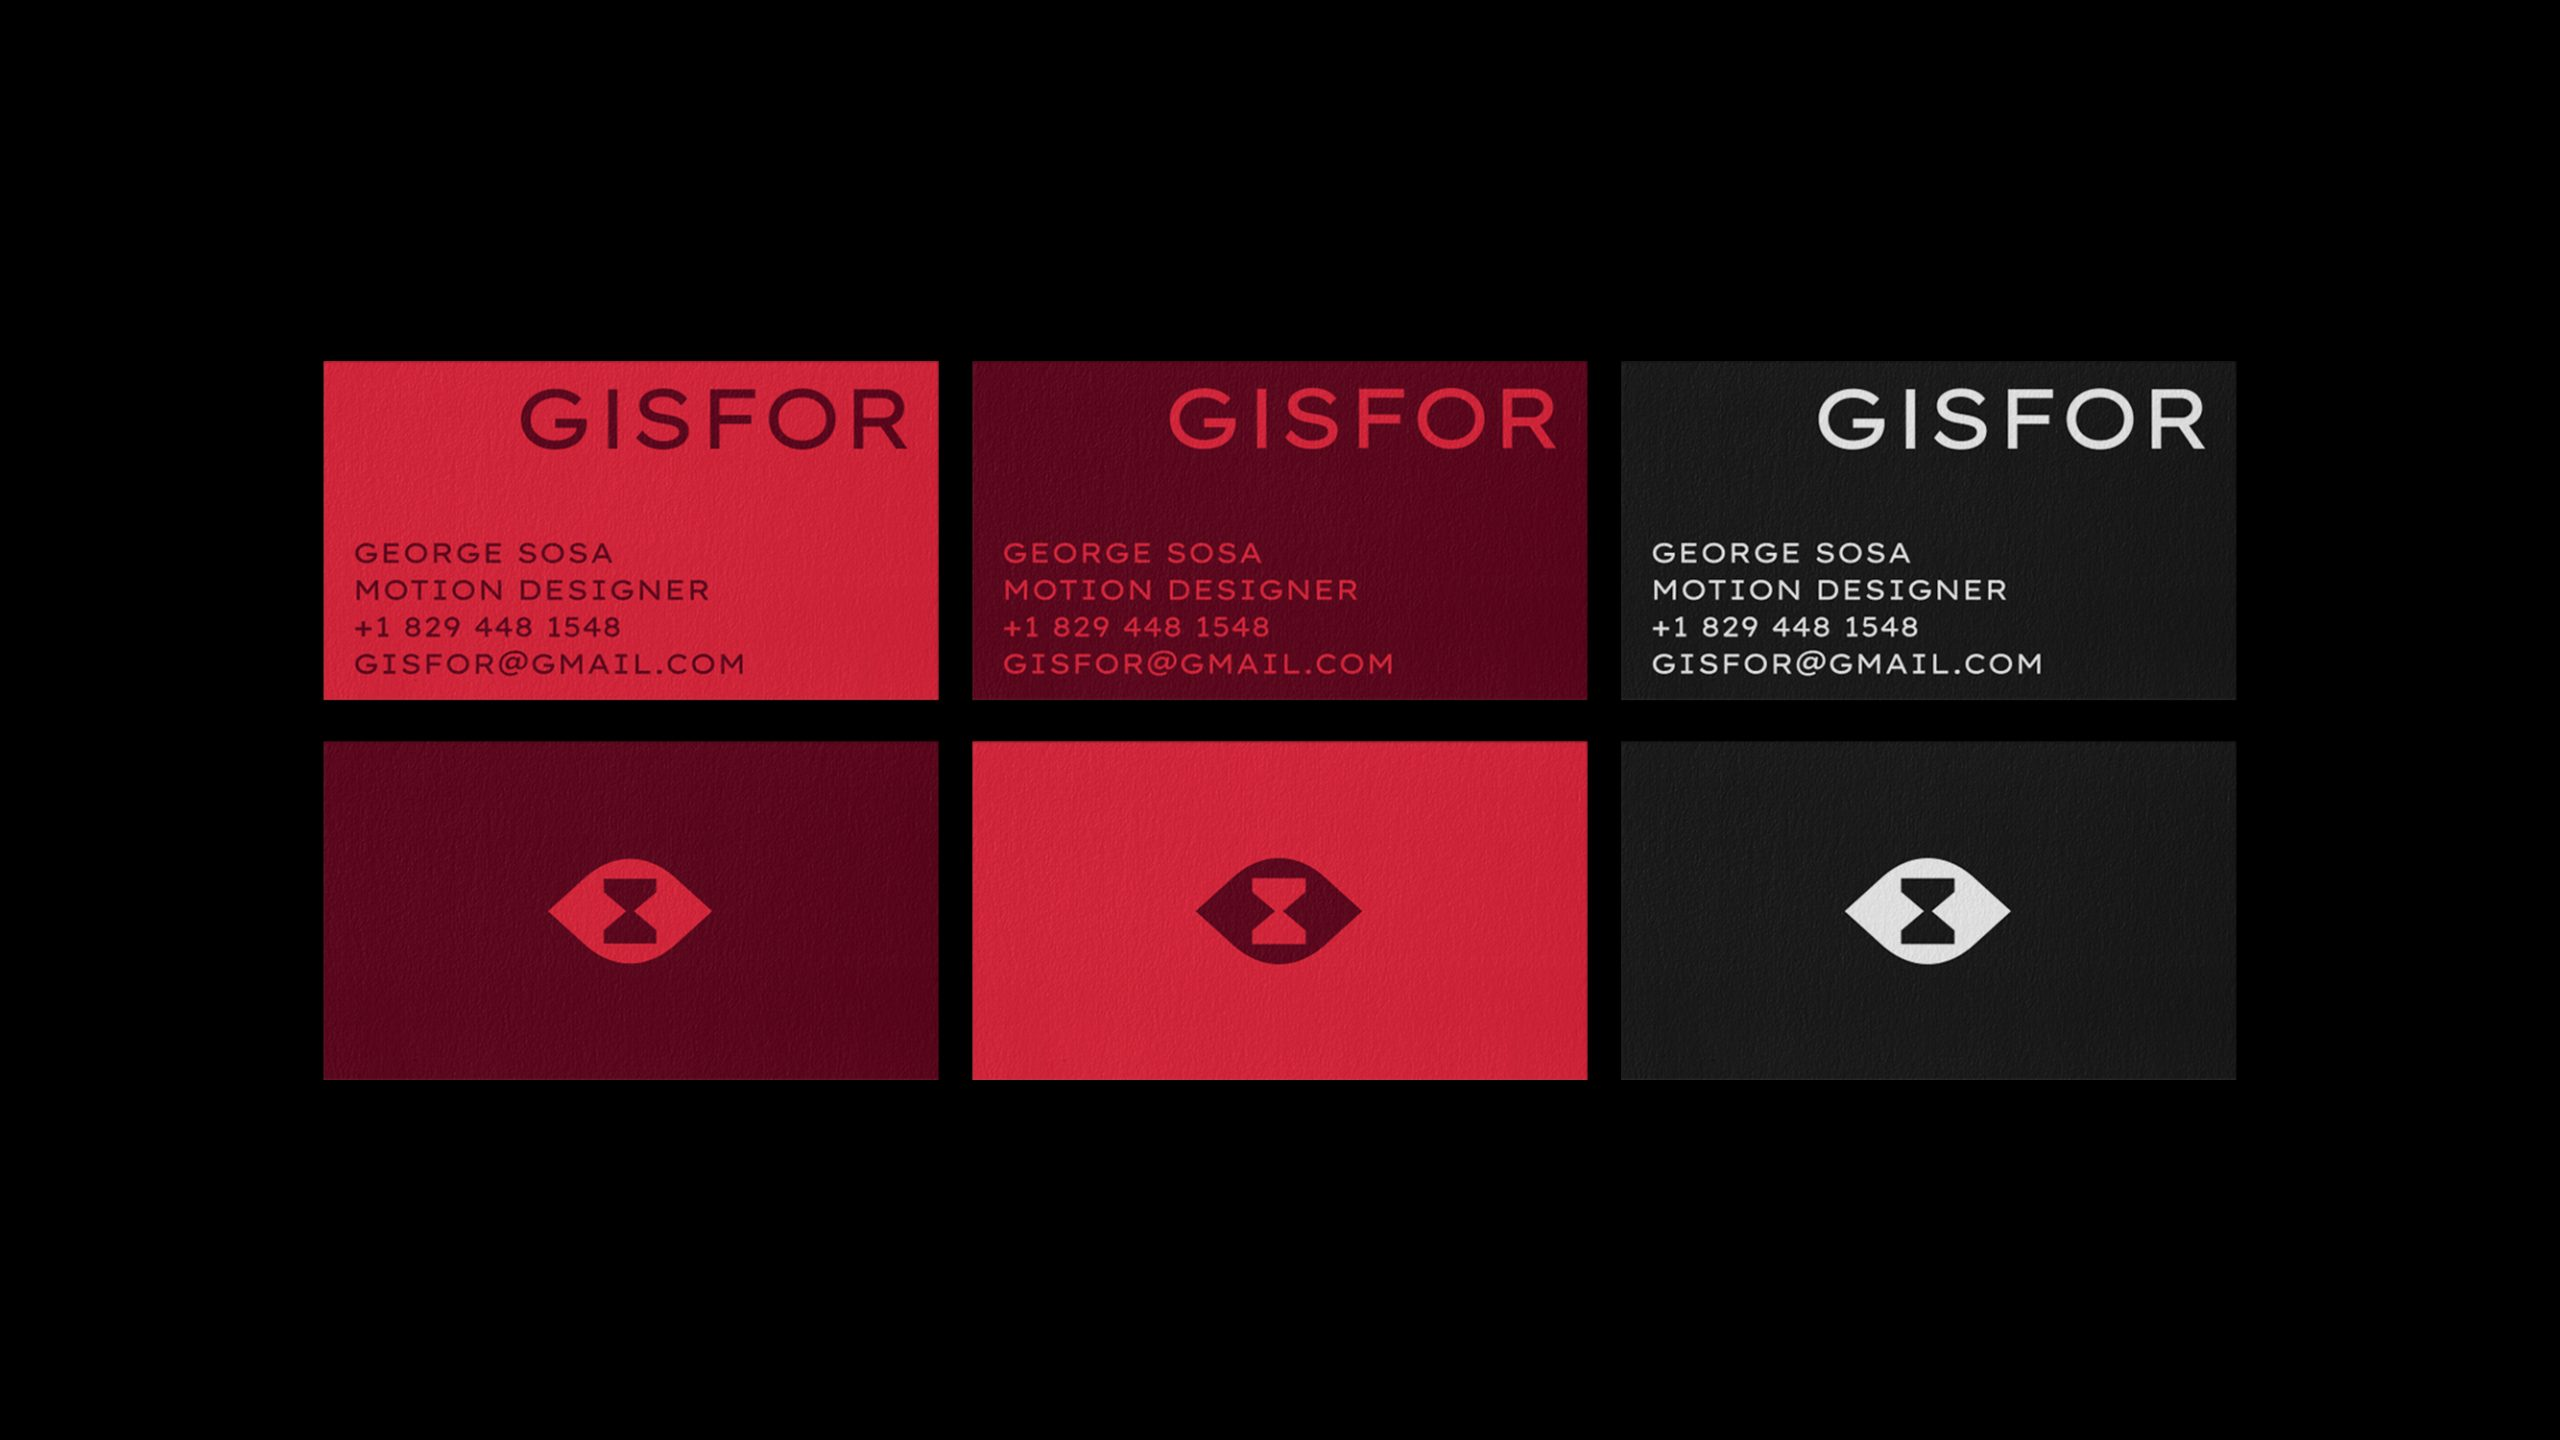 Gisfor business cards